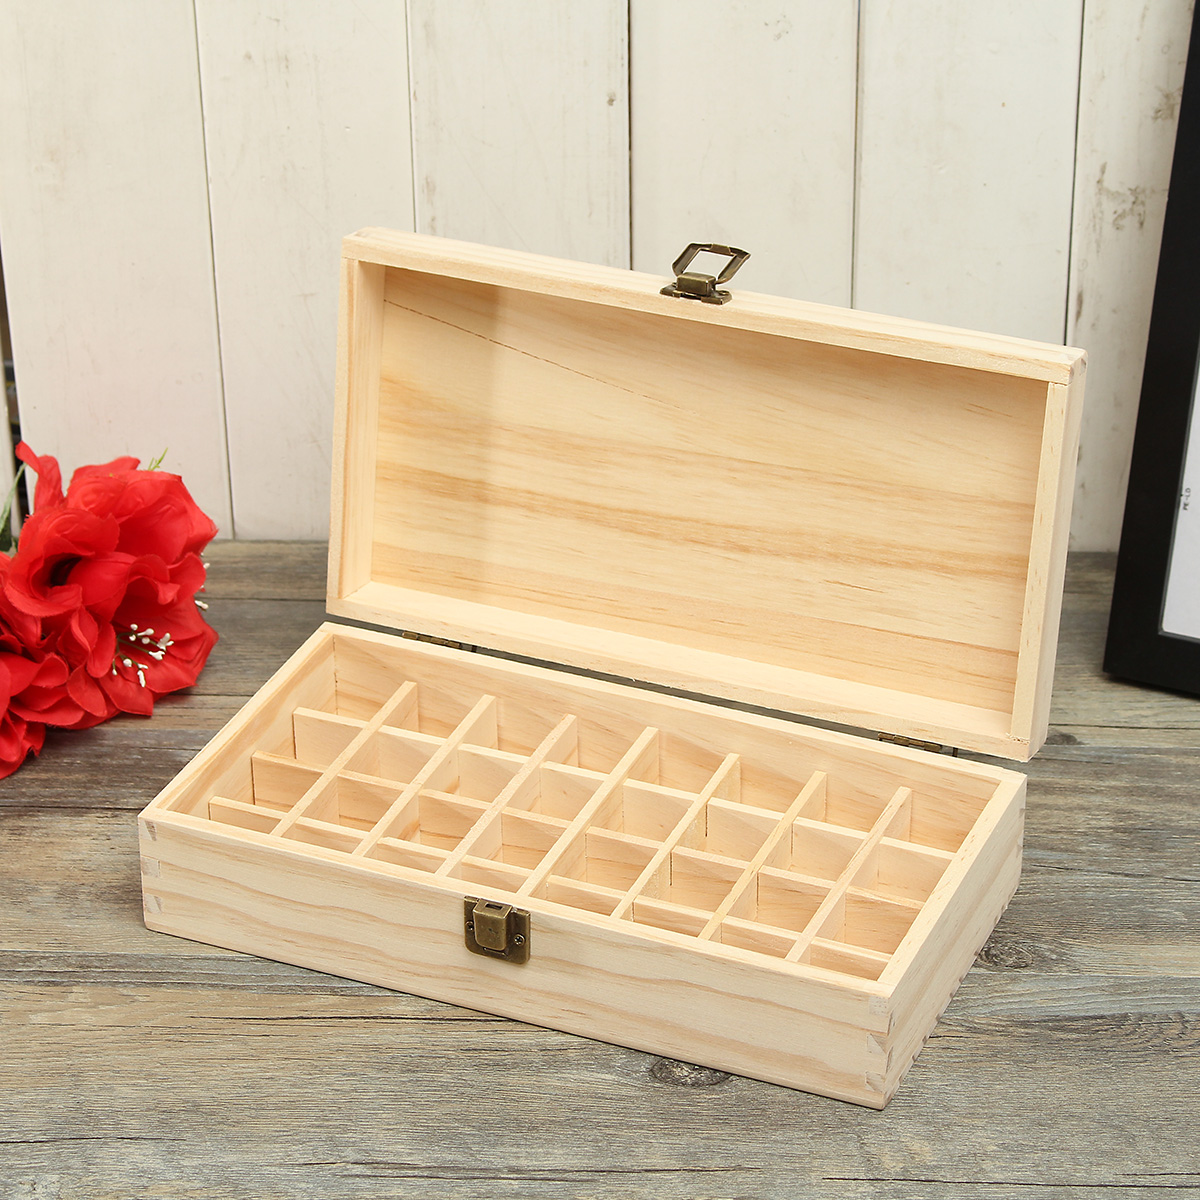 32 Holes Essential Oils Wooden Box Container Solid Pine Pure Natural Wood Storage Case